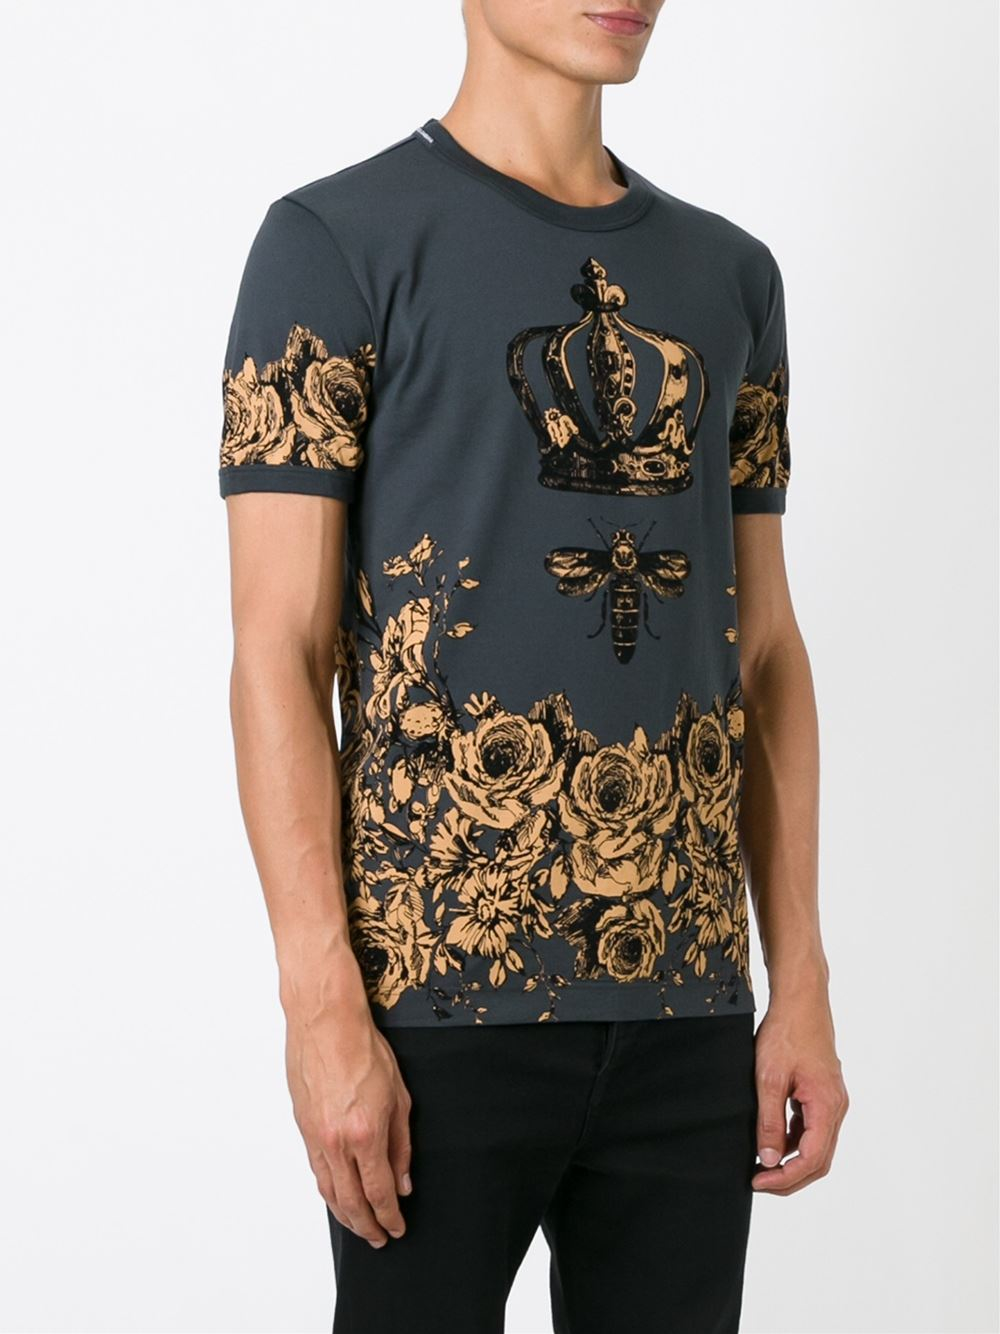 Dolce gabbana floral bee and crown print t shirt in gray for Dolce and gabbana printed t shirts